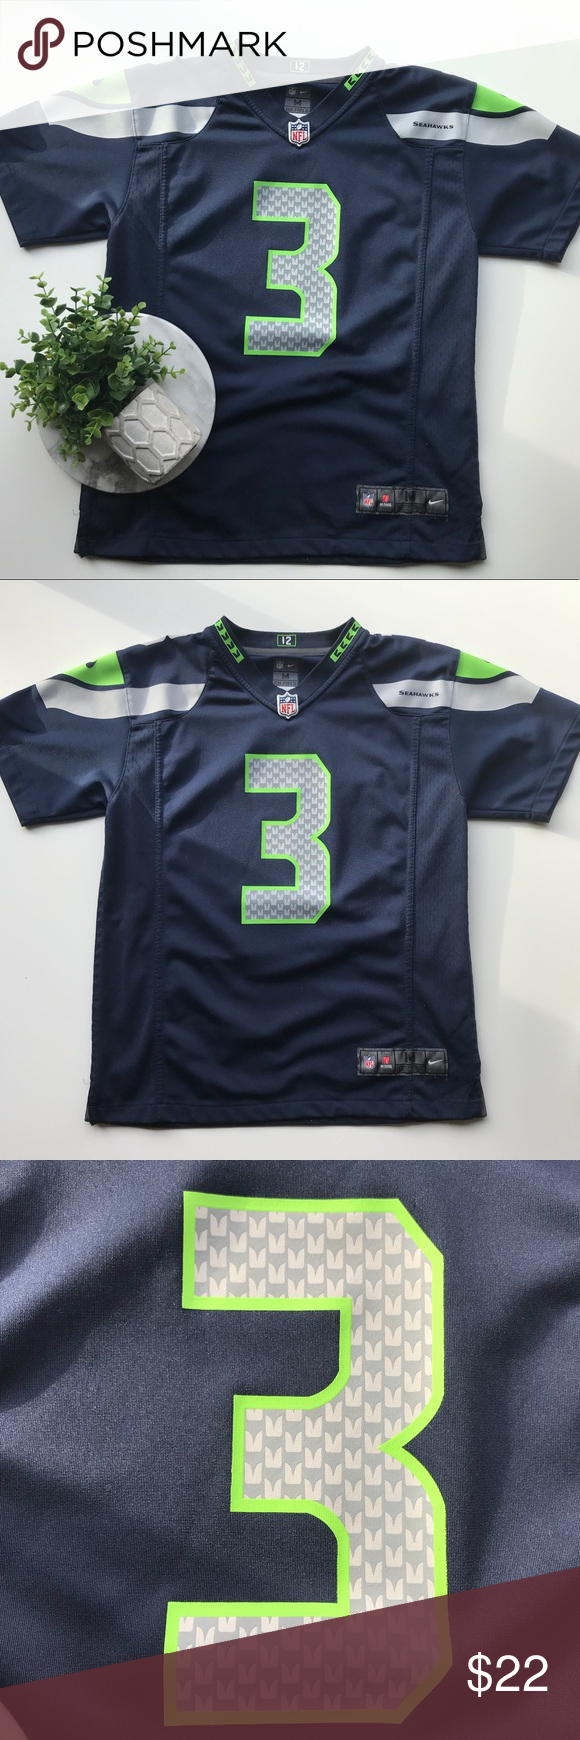 russell wilson jersey youth medium